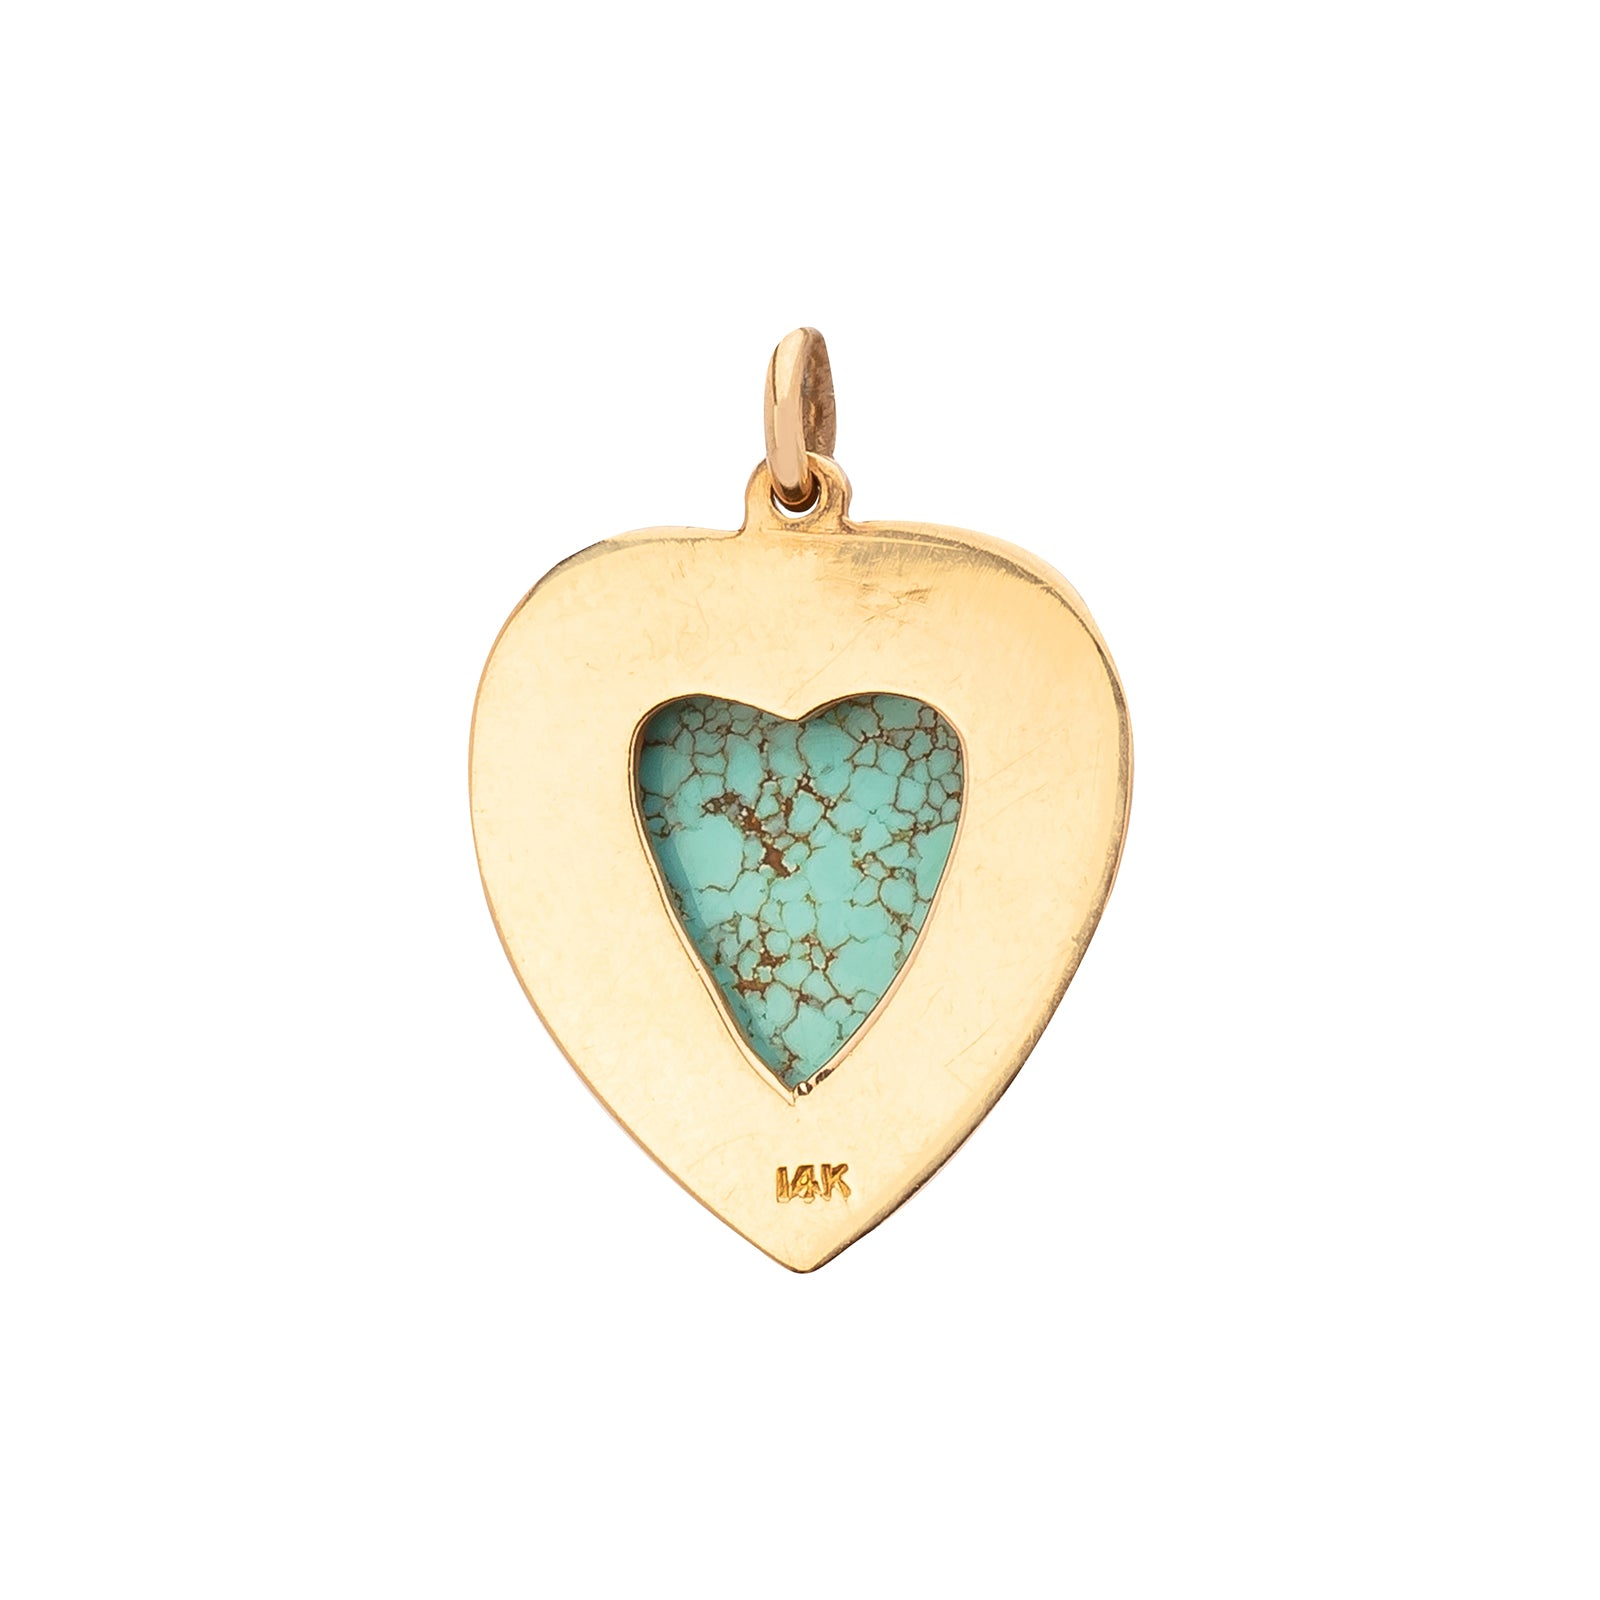 Antique & Vintage Jewelry Turquoise Heart Pendant - Charms & Pendants - Broken English Jewelry